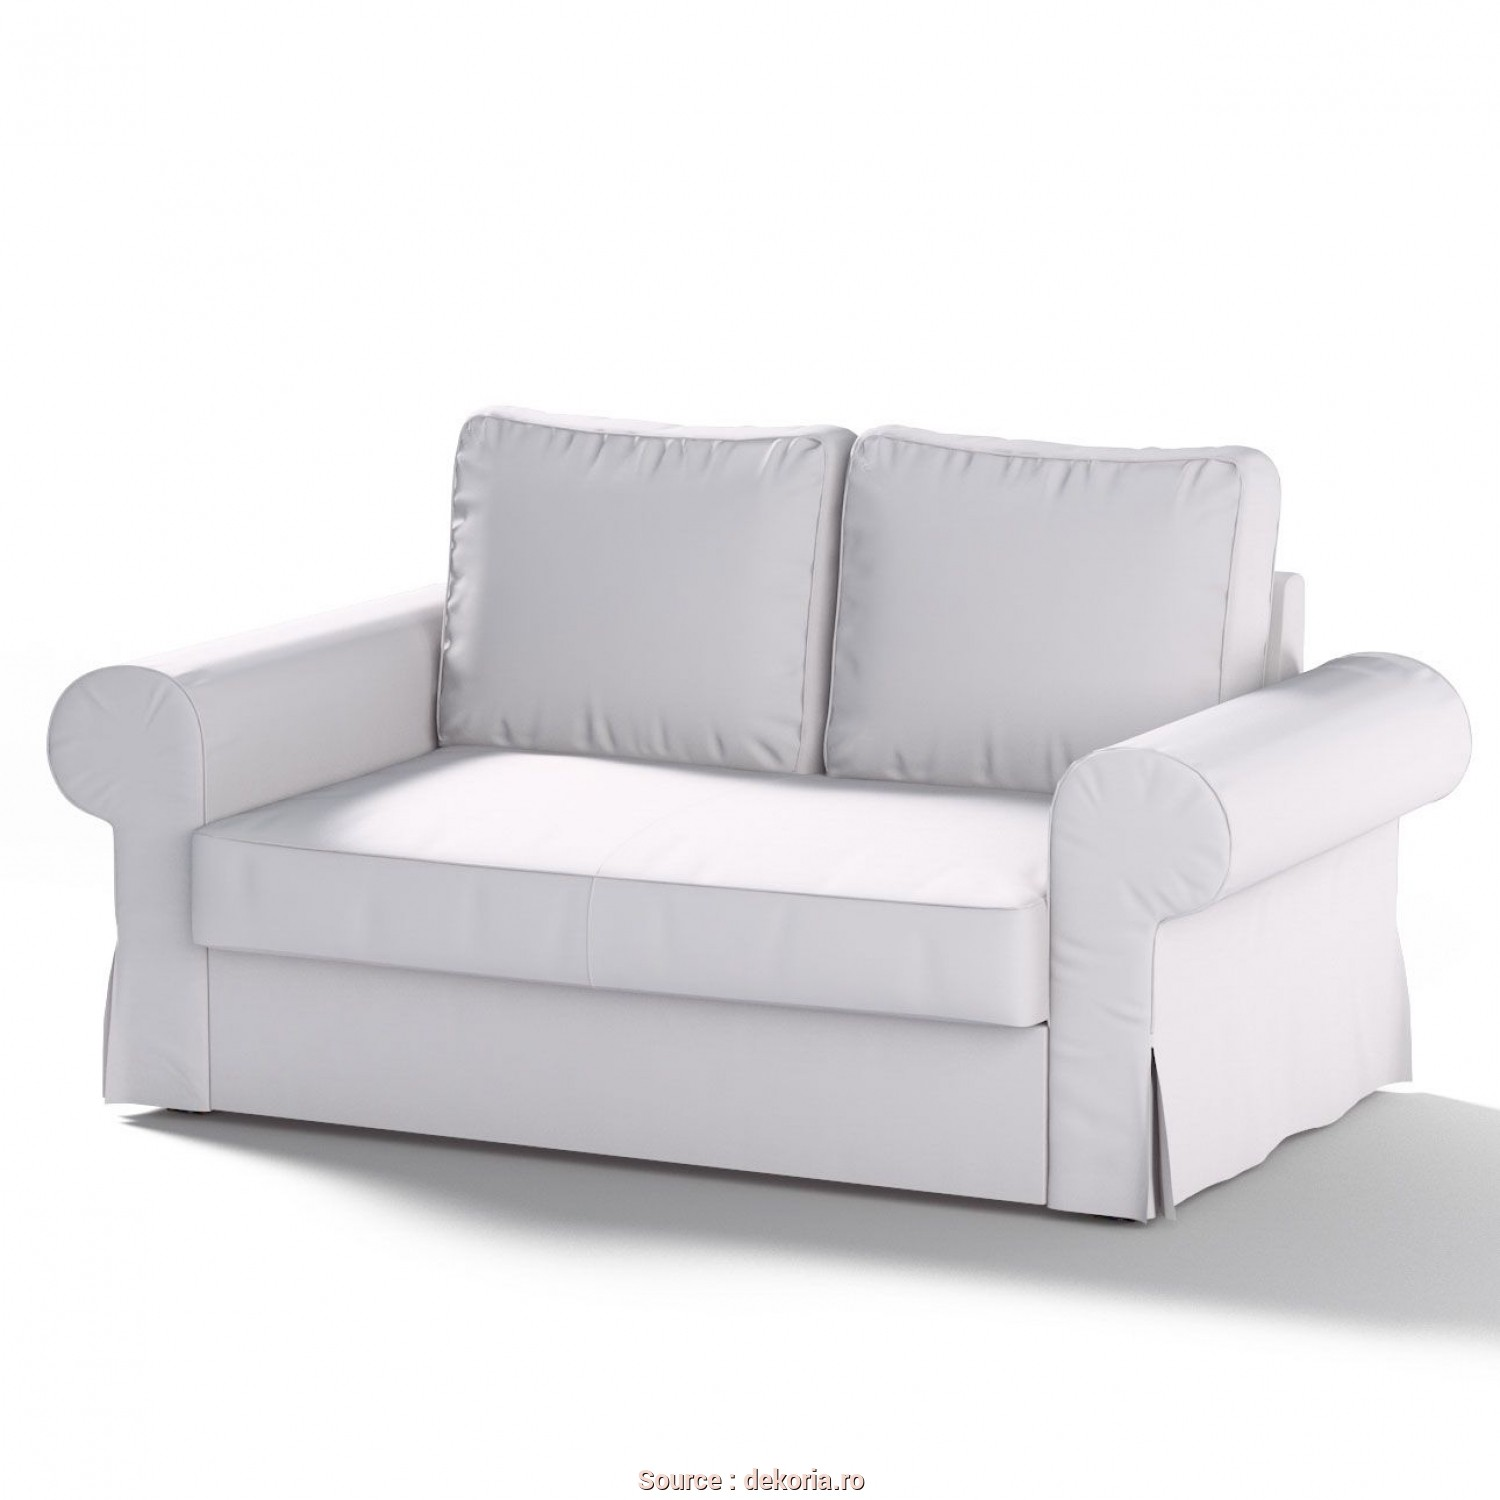 Ikea Backabro 2 Seater, Loveable Backabro 2-Seat Sofa, Cover In Collection Panama Cotton, Fabric: 702